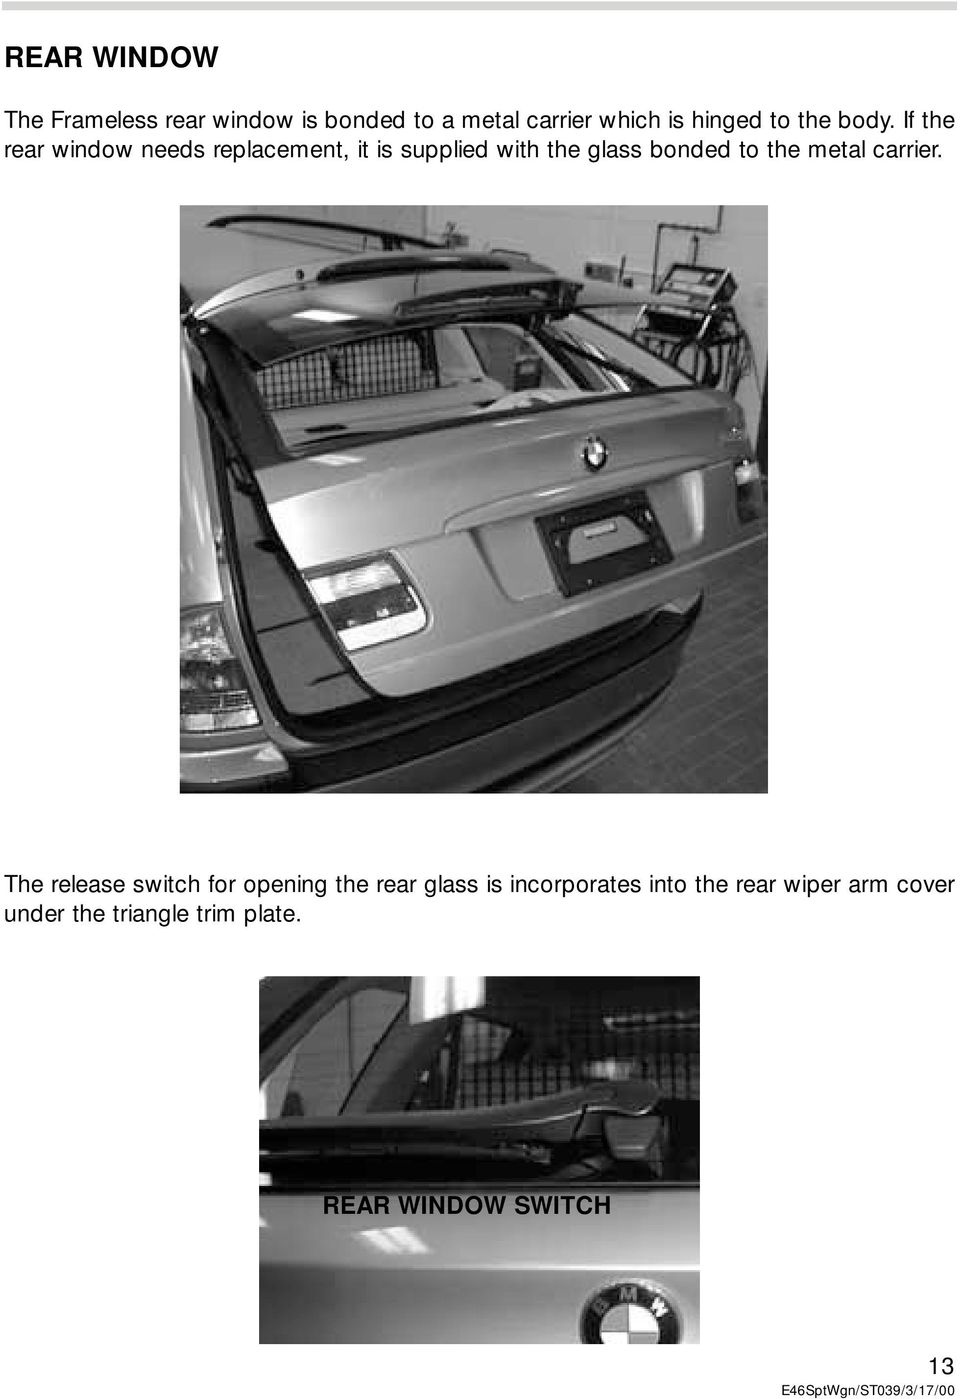 If the rear window needs replacement, it is supplied with the glass bonded to the